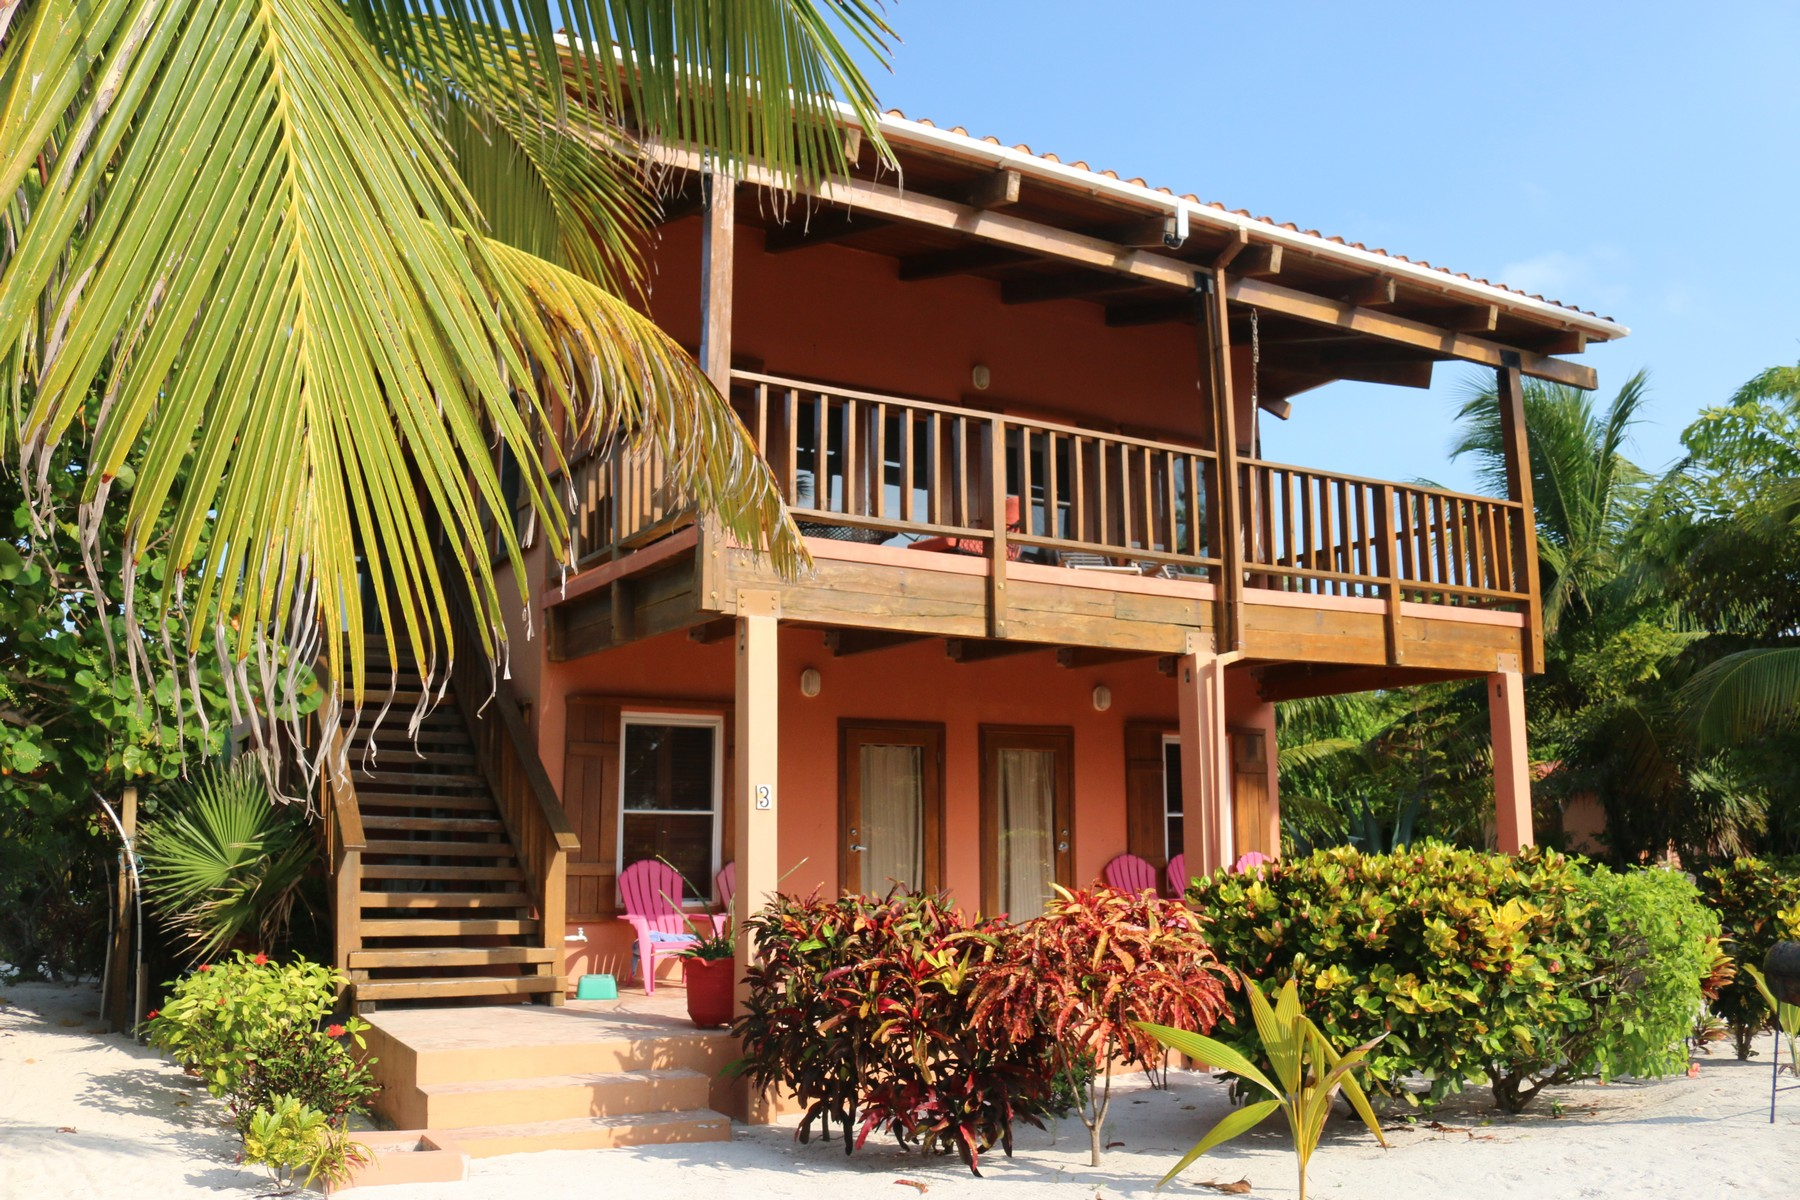 Single Family Home for Rent at Coral Caye Villa San Pedro Town, Belize